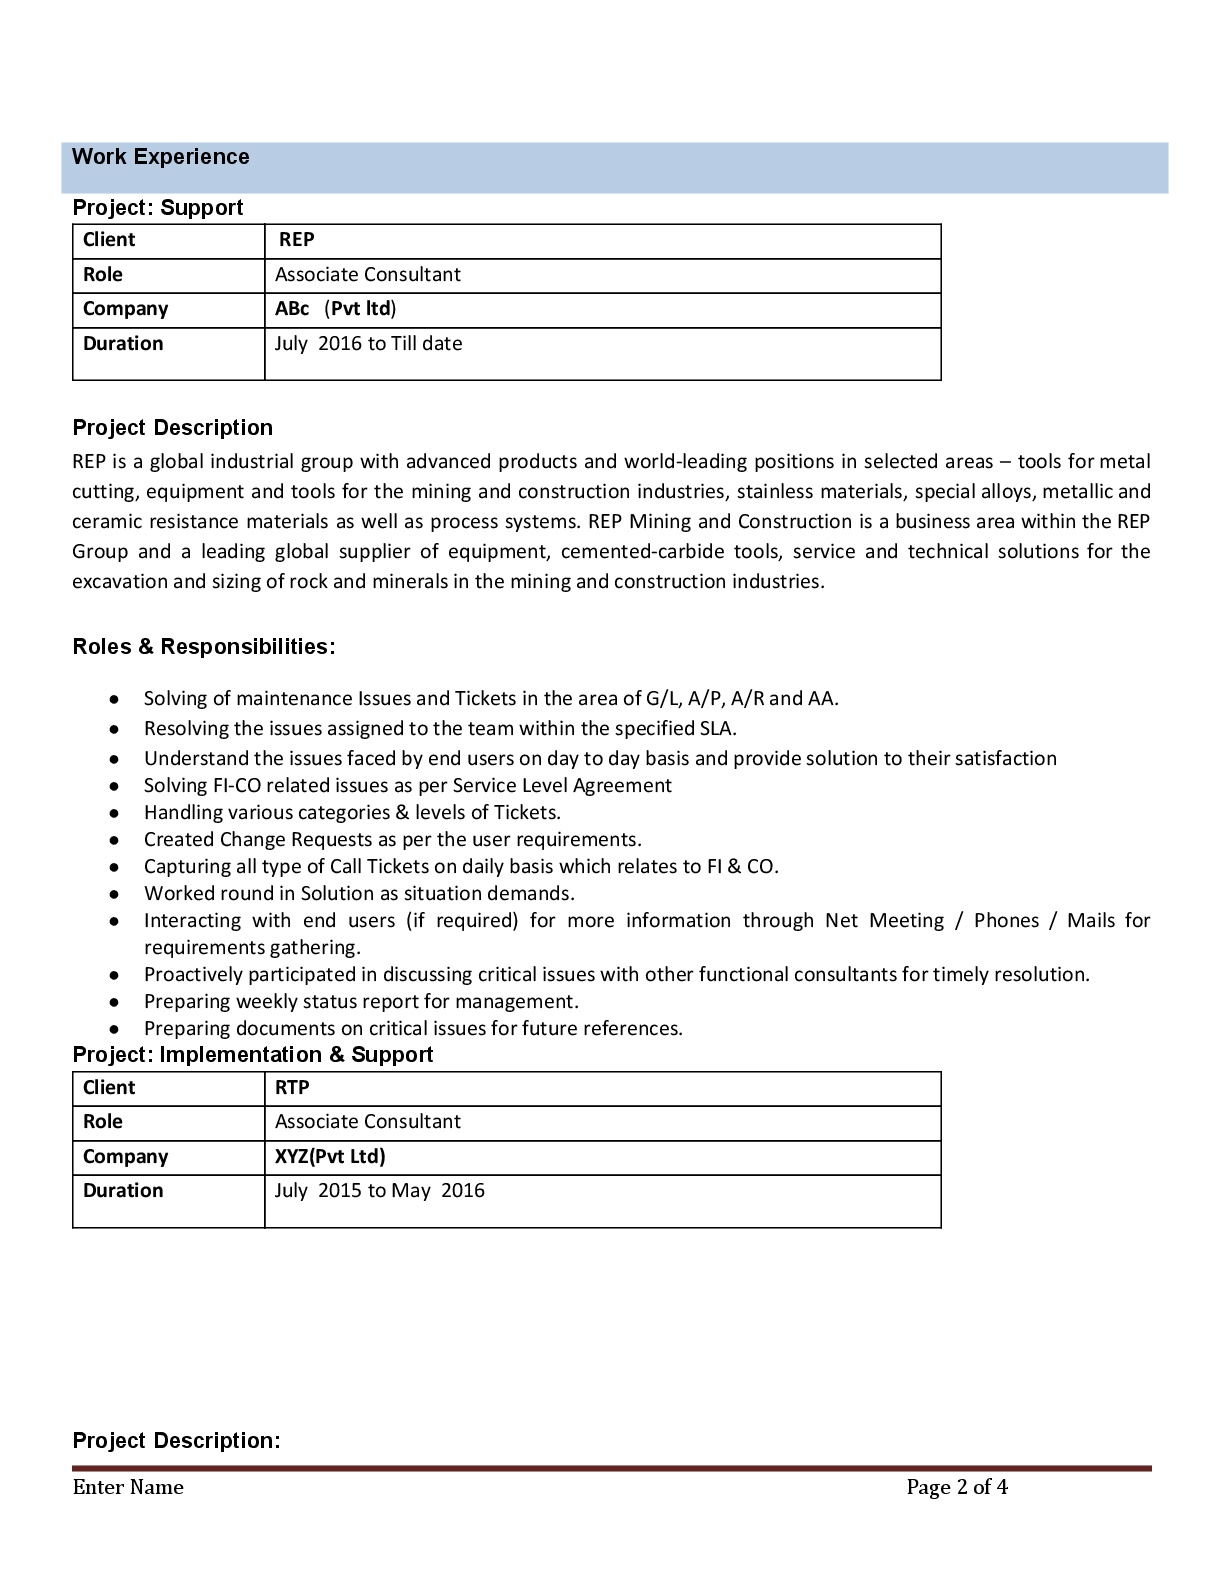 SAP FICO Resume With 3 Years Experience - Instant Download - Resume ...